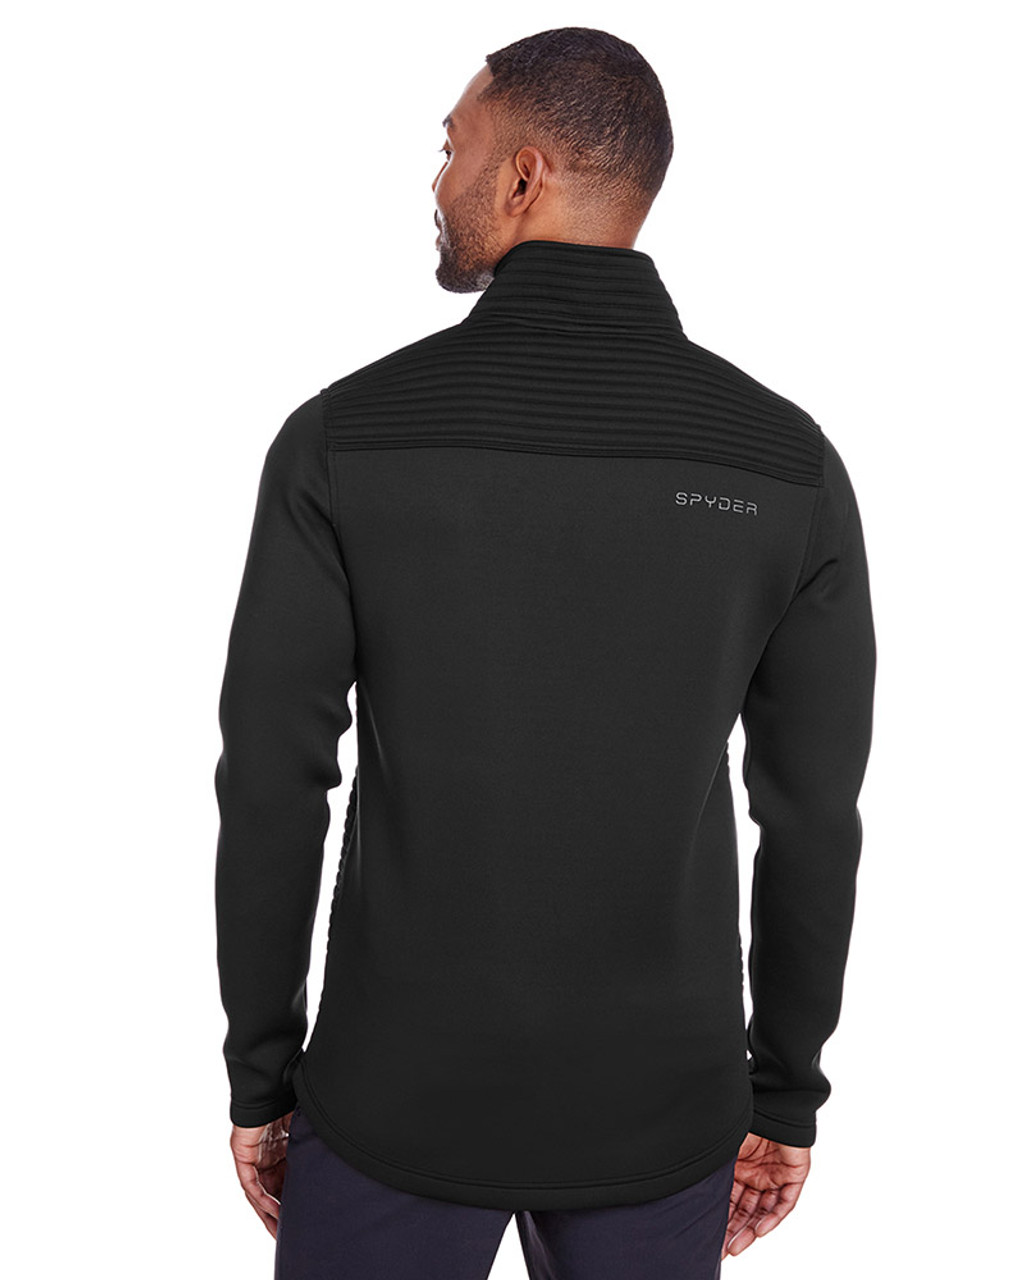 Black - back, S16539 Spyder Men's Venom Full-Zip Jacket | Blankclothing.ca